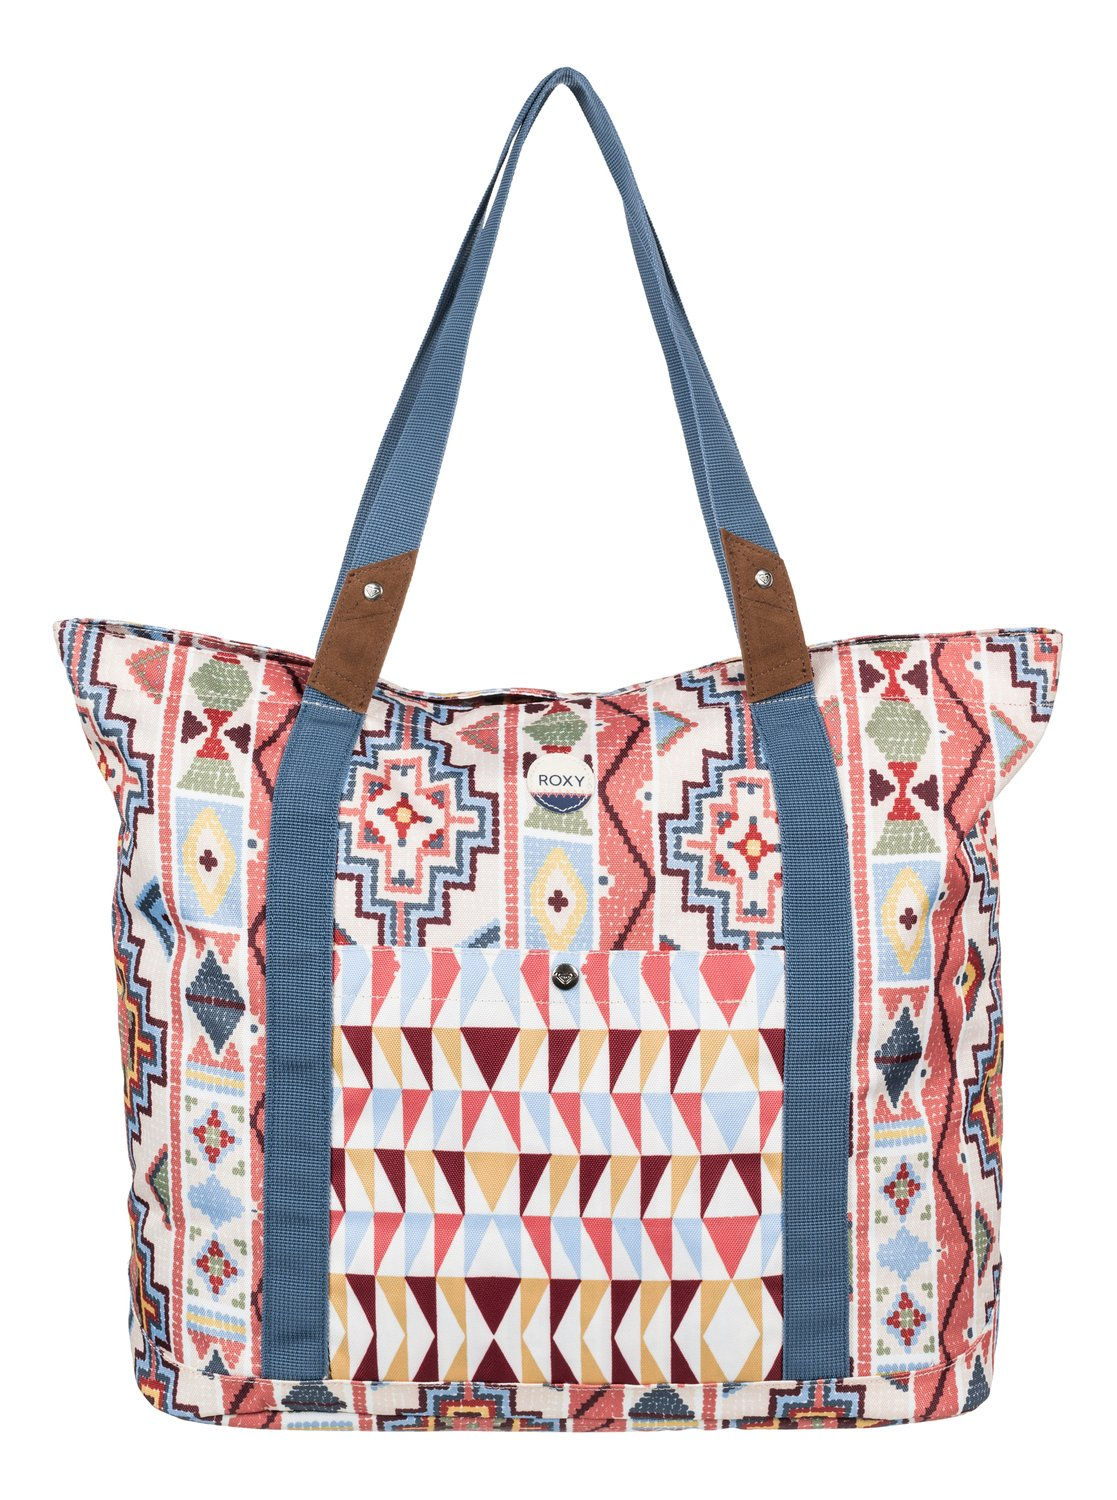 Other Side - Bolsa tote tamaño A3 para Mujer Roxy